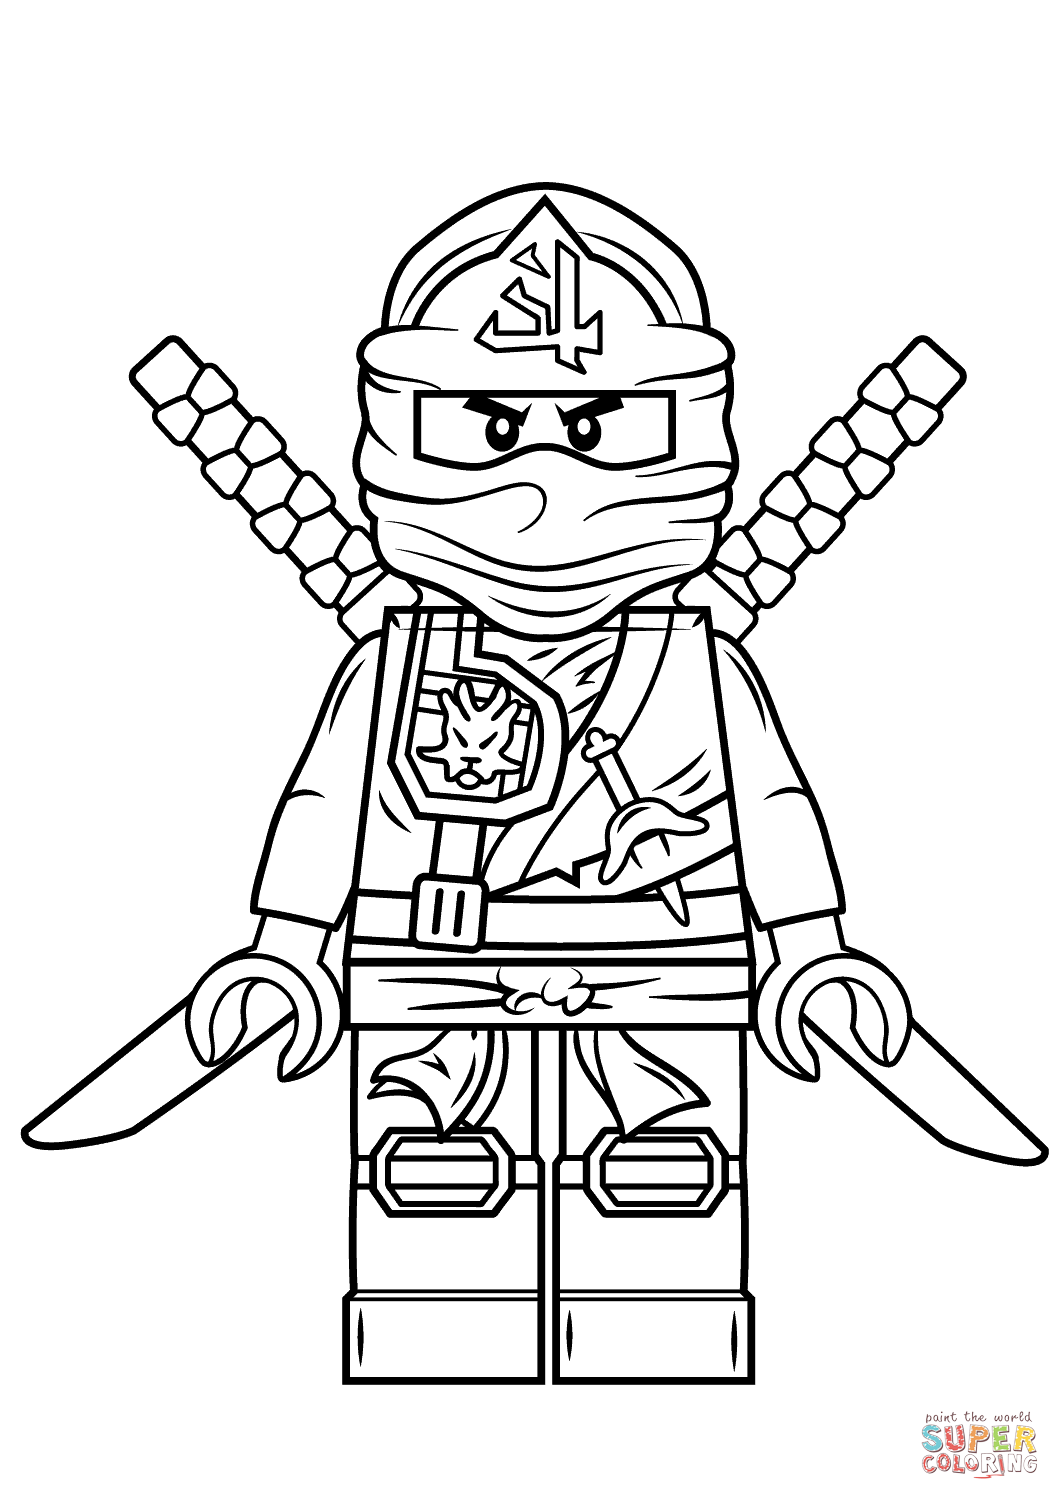 Game online coloring lego - Lego Ninjago Green Ninja Coloring Pages Printable And Coloring Book To Print For Free Find More Coloring Pages Online For Kids And Adults Of Lego Ninjago